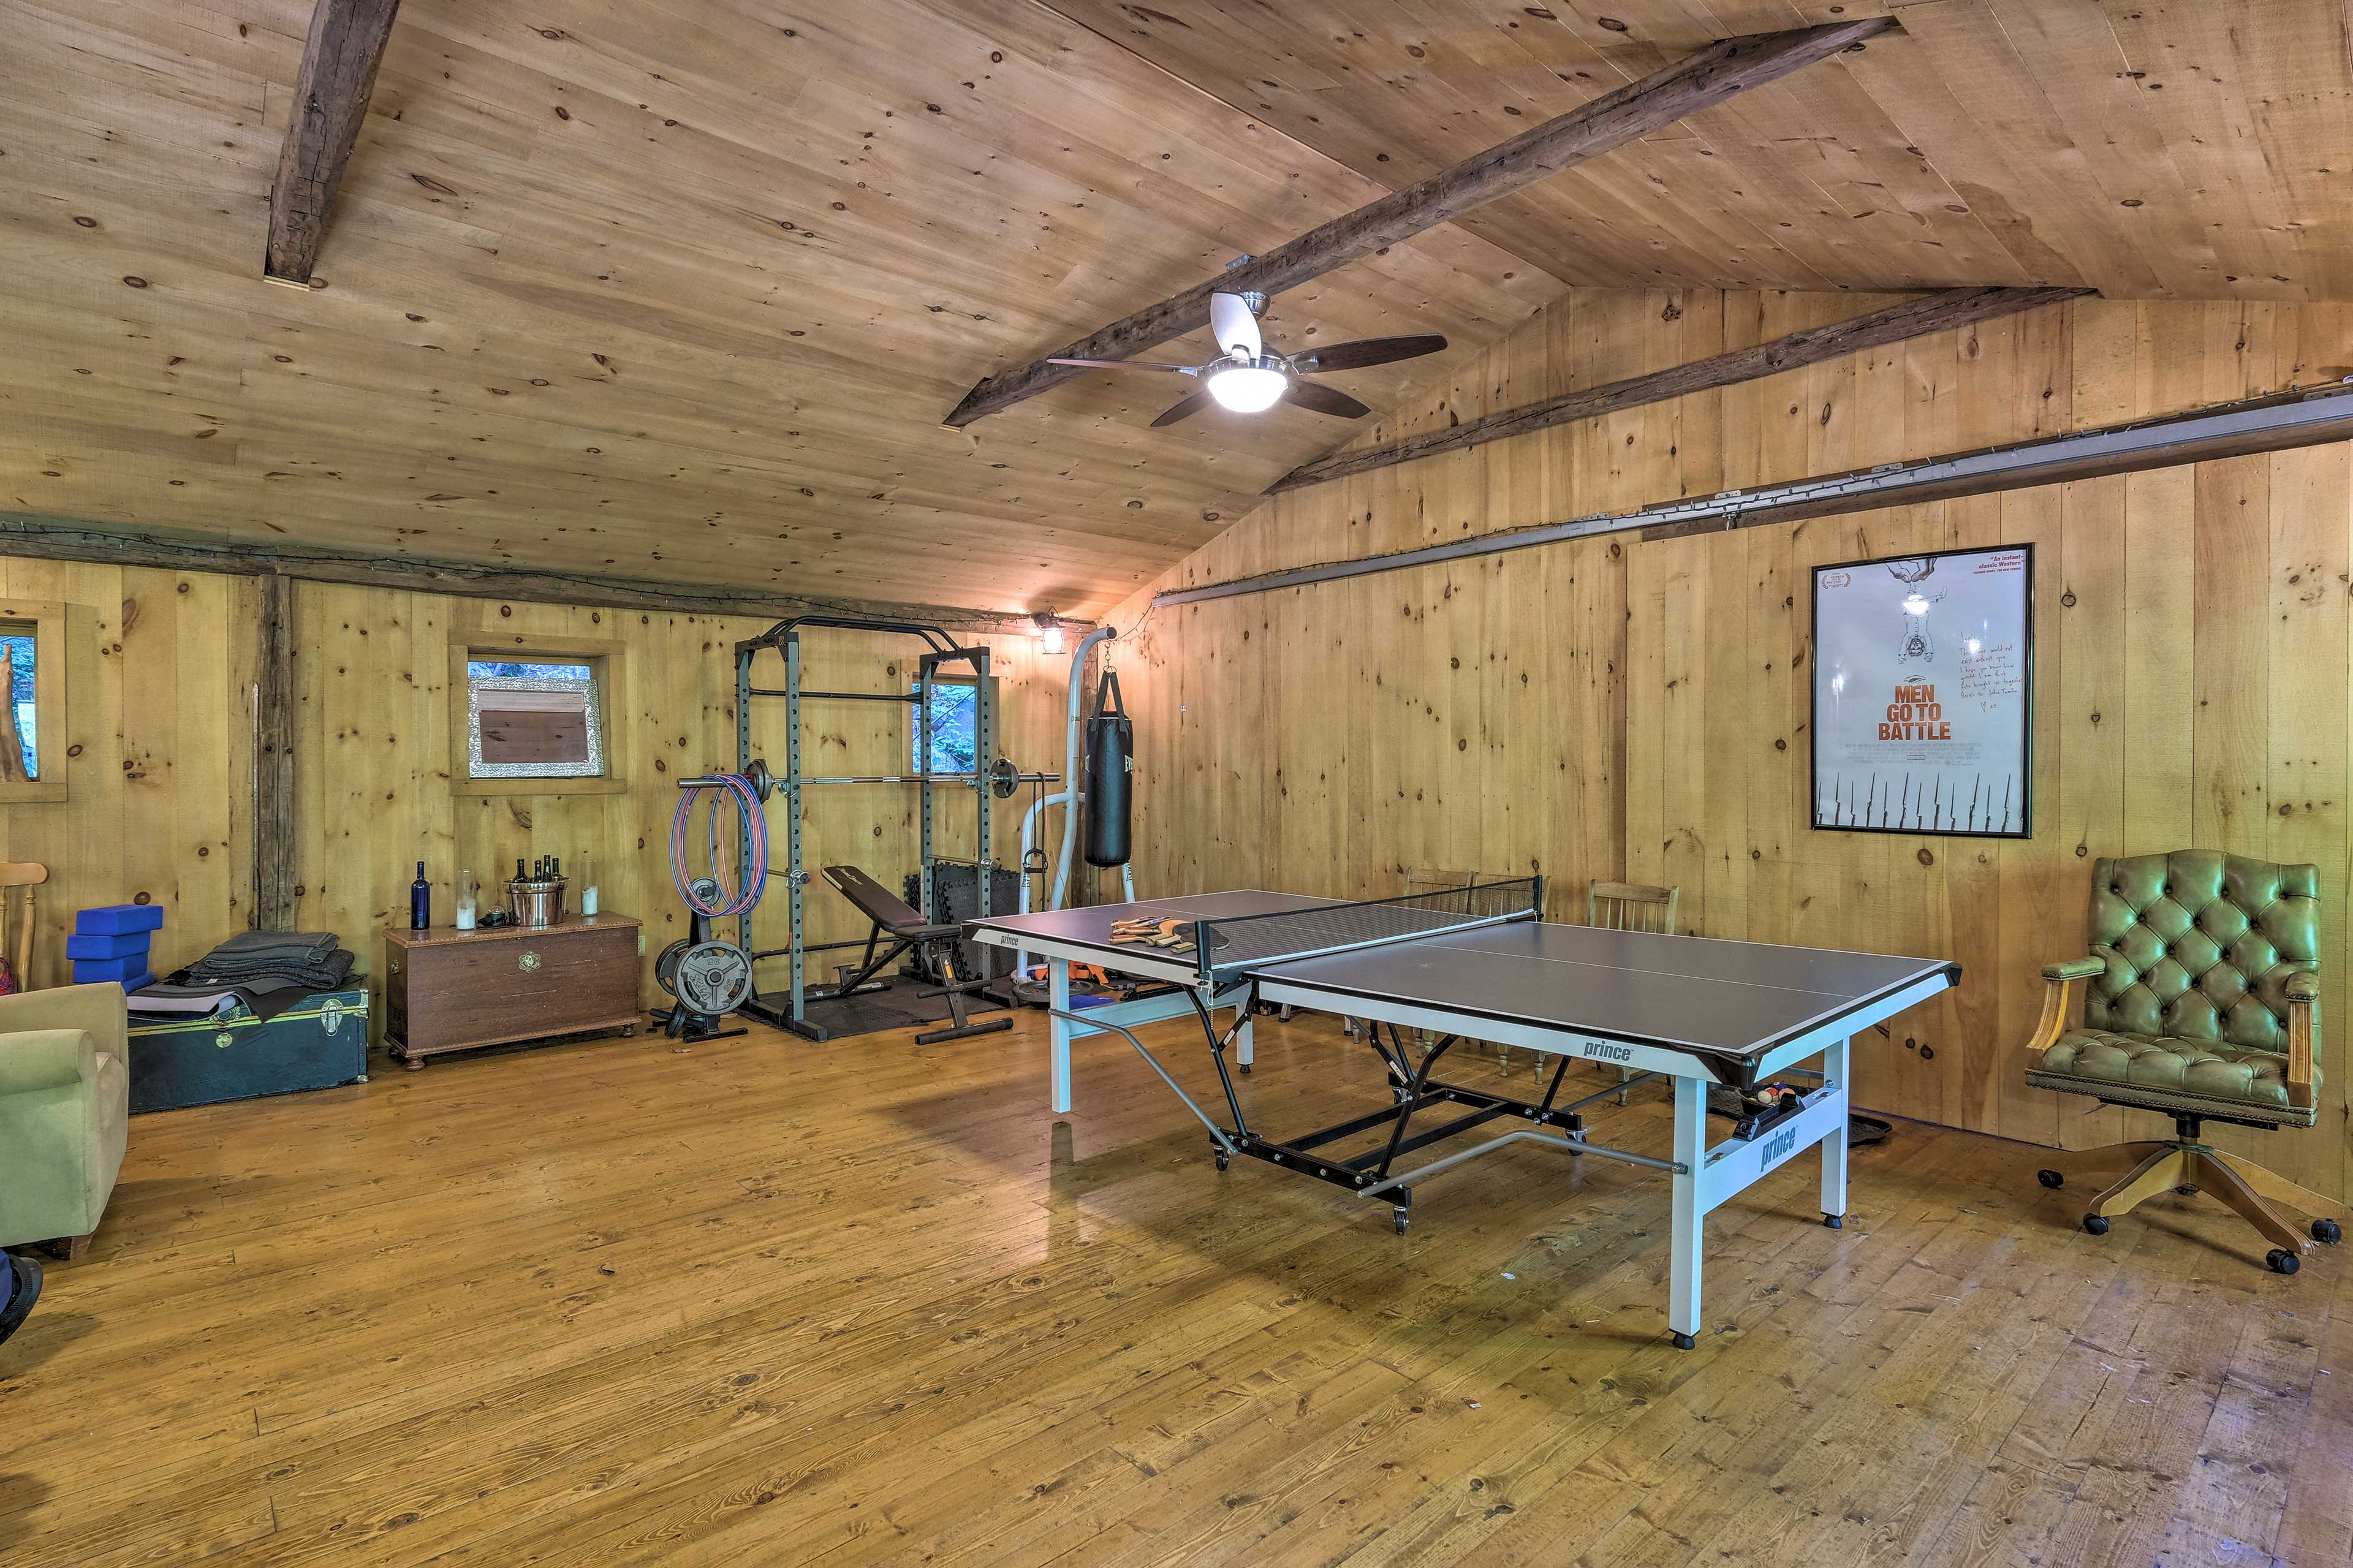 Play a competitive ping pong tournament with companions.